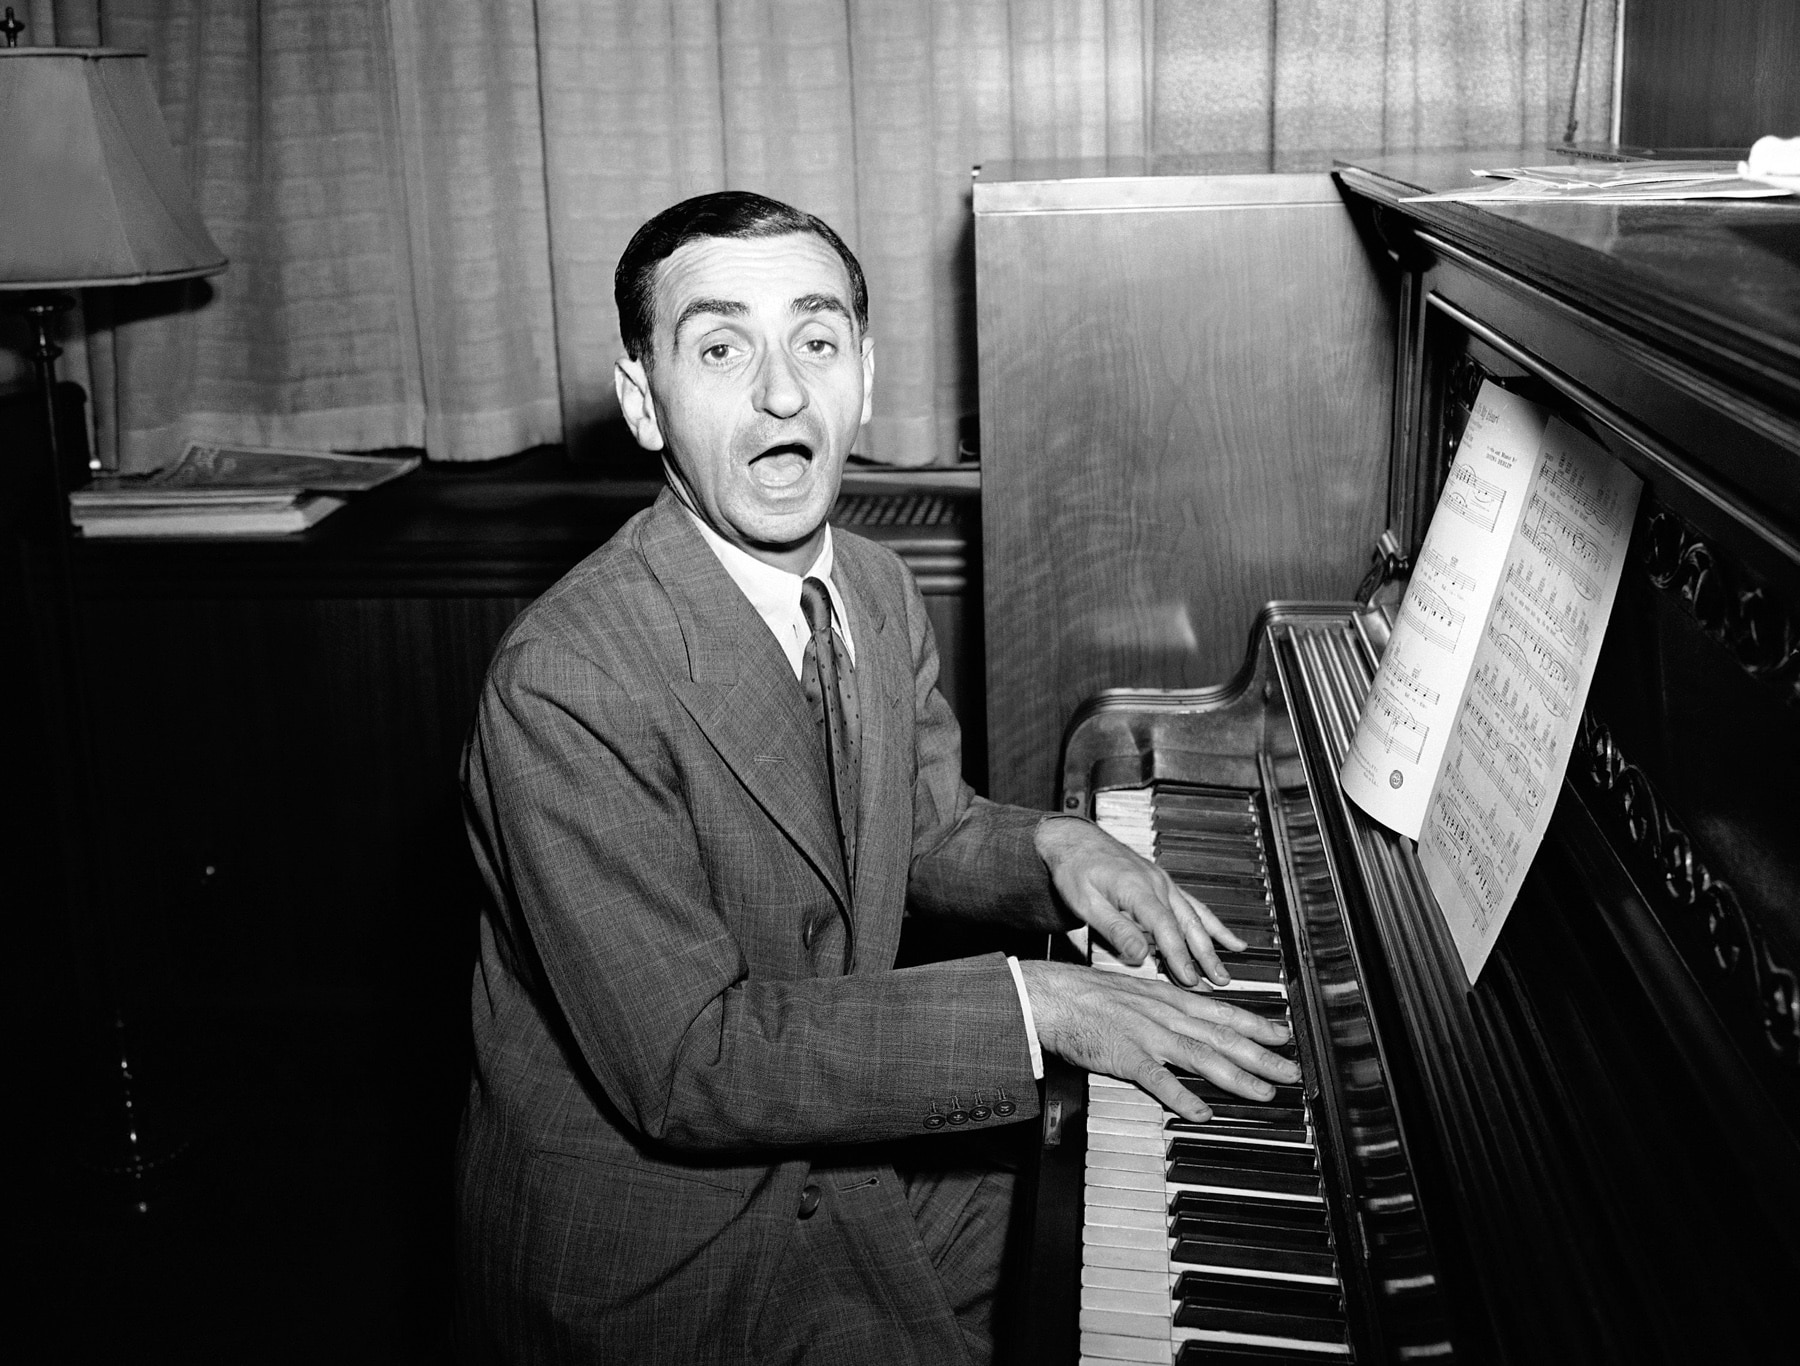 Irving Berlin with hands on piano keys (© AP Images)